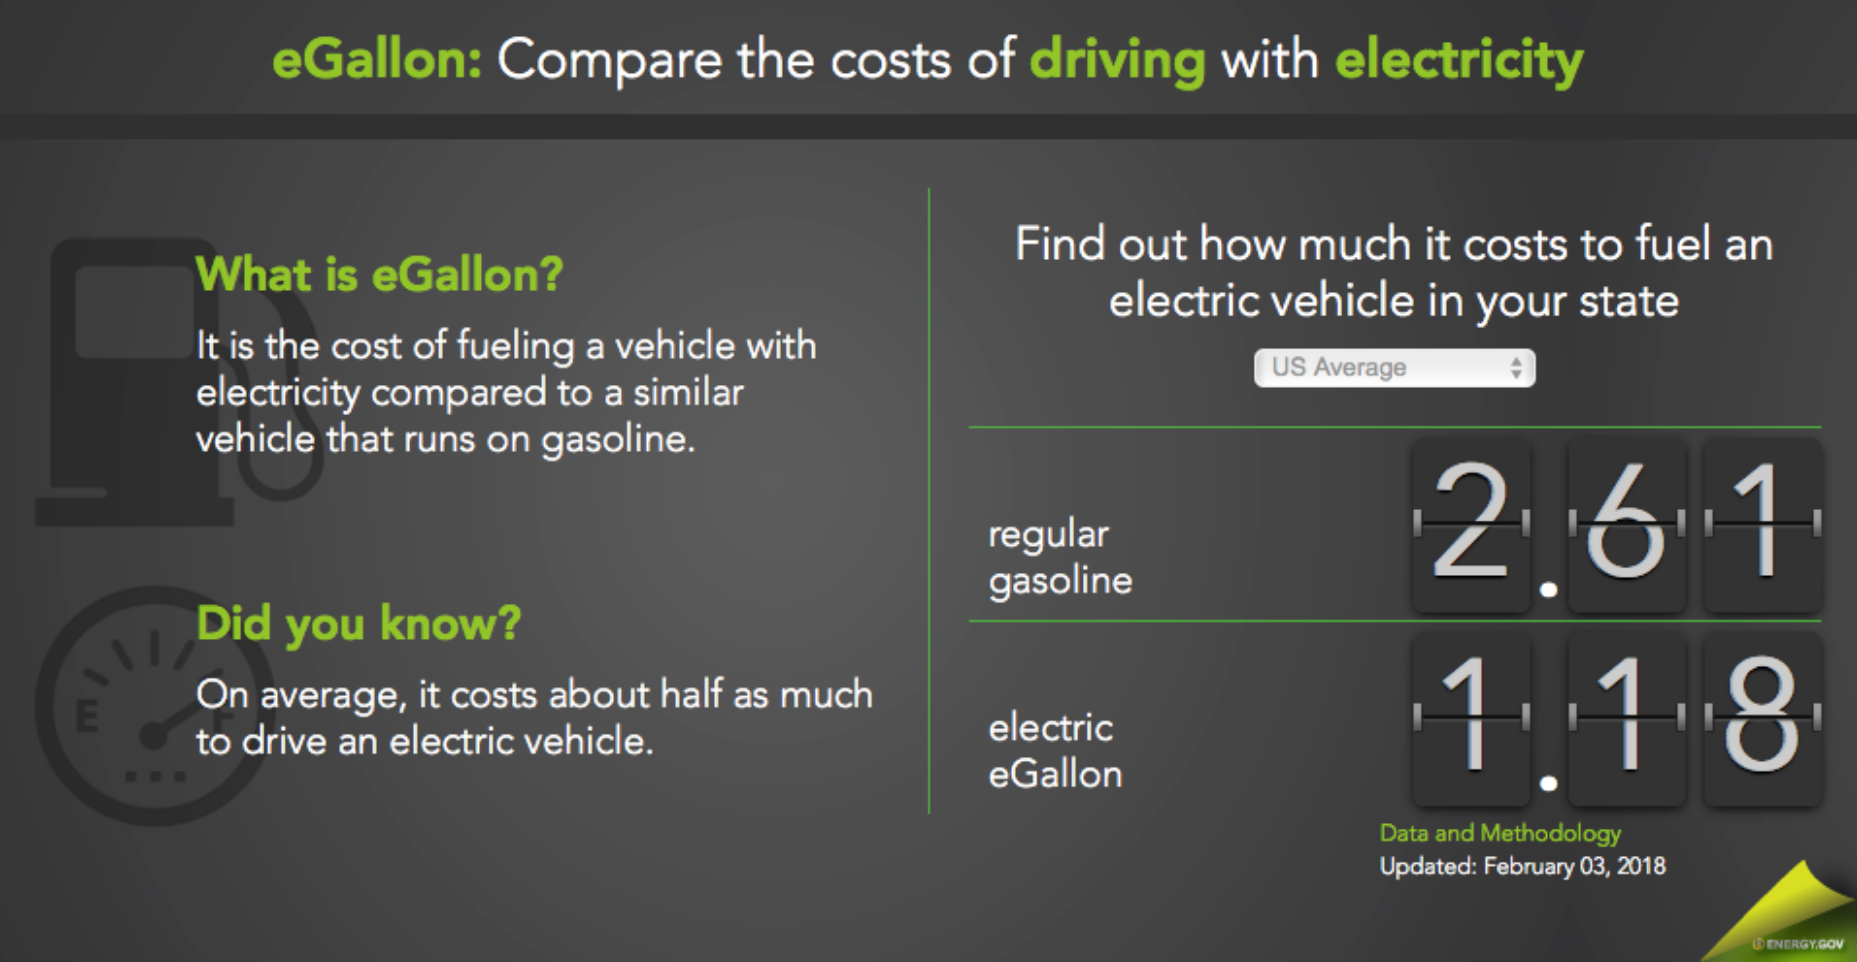 Compare the costs of driving with electricity